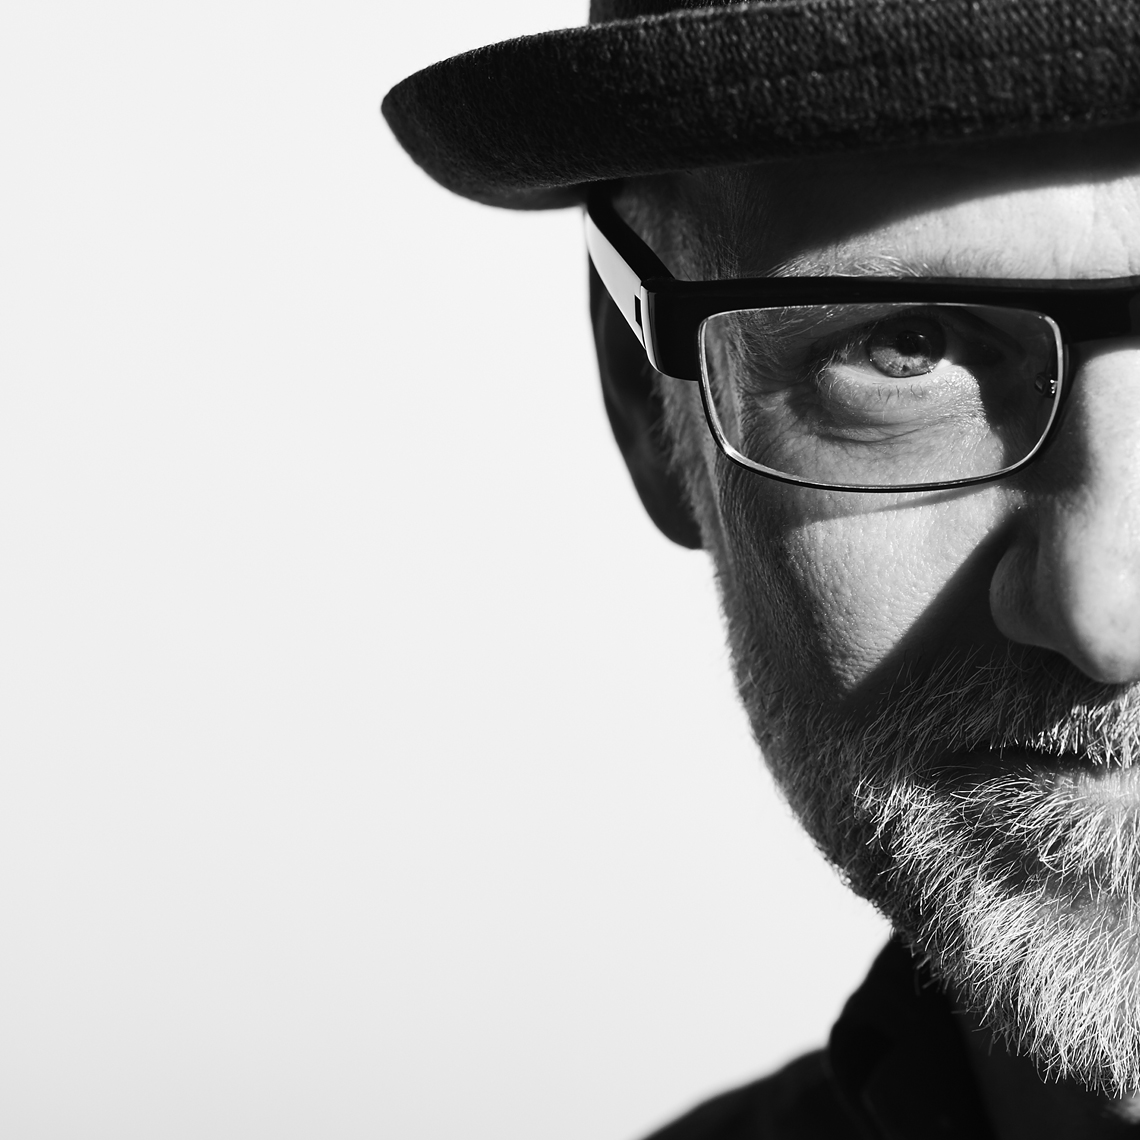 Black and white portrait of white man in a hat with beard and glasses